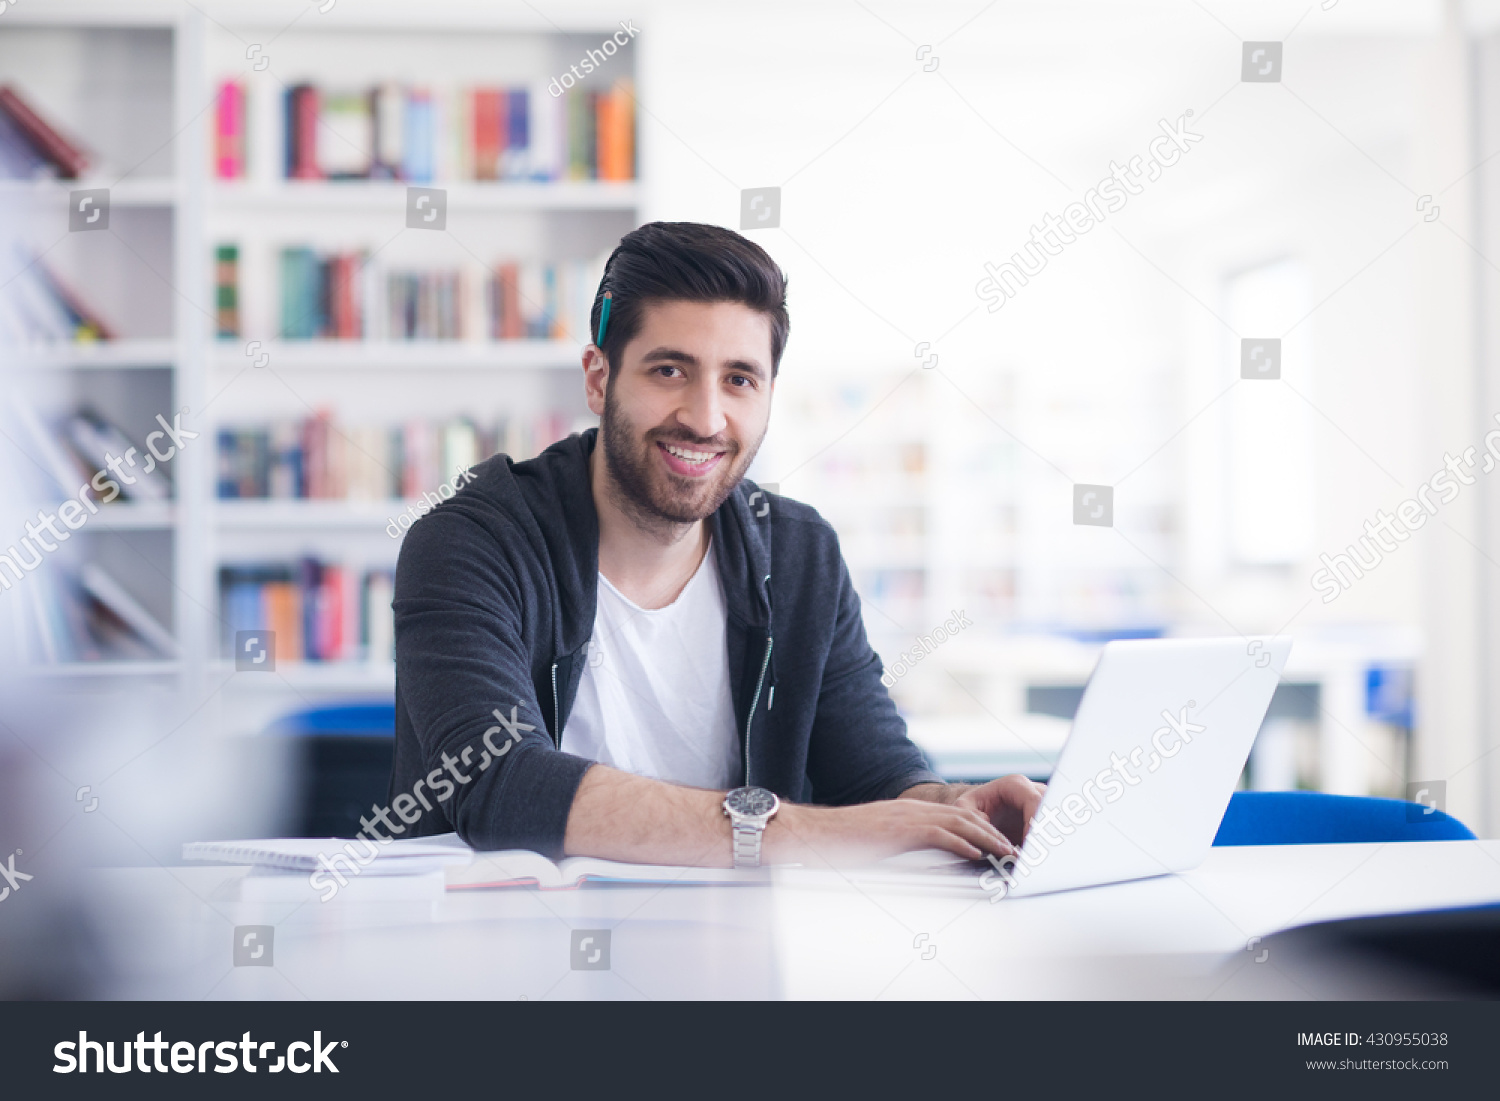 stock-photo-student-preparing-exam-and-learning-lessons-in-school-library-making-research-on-laptop-and-browse-430955038.jpg